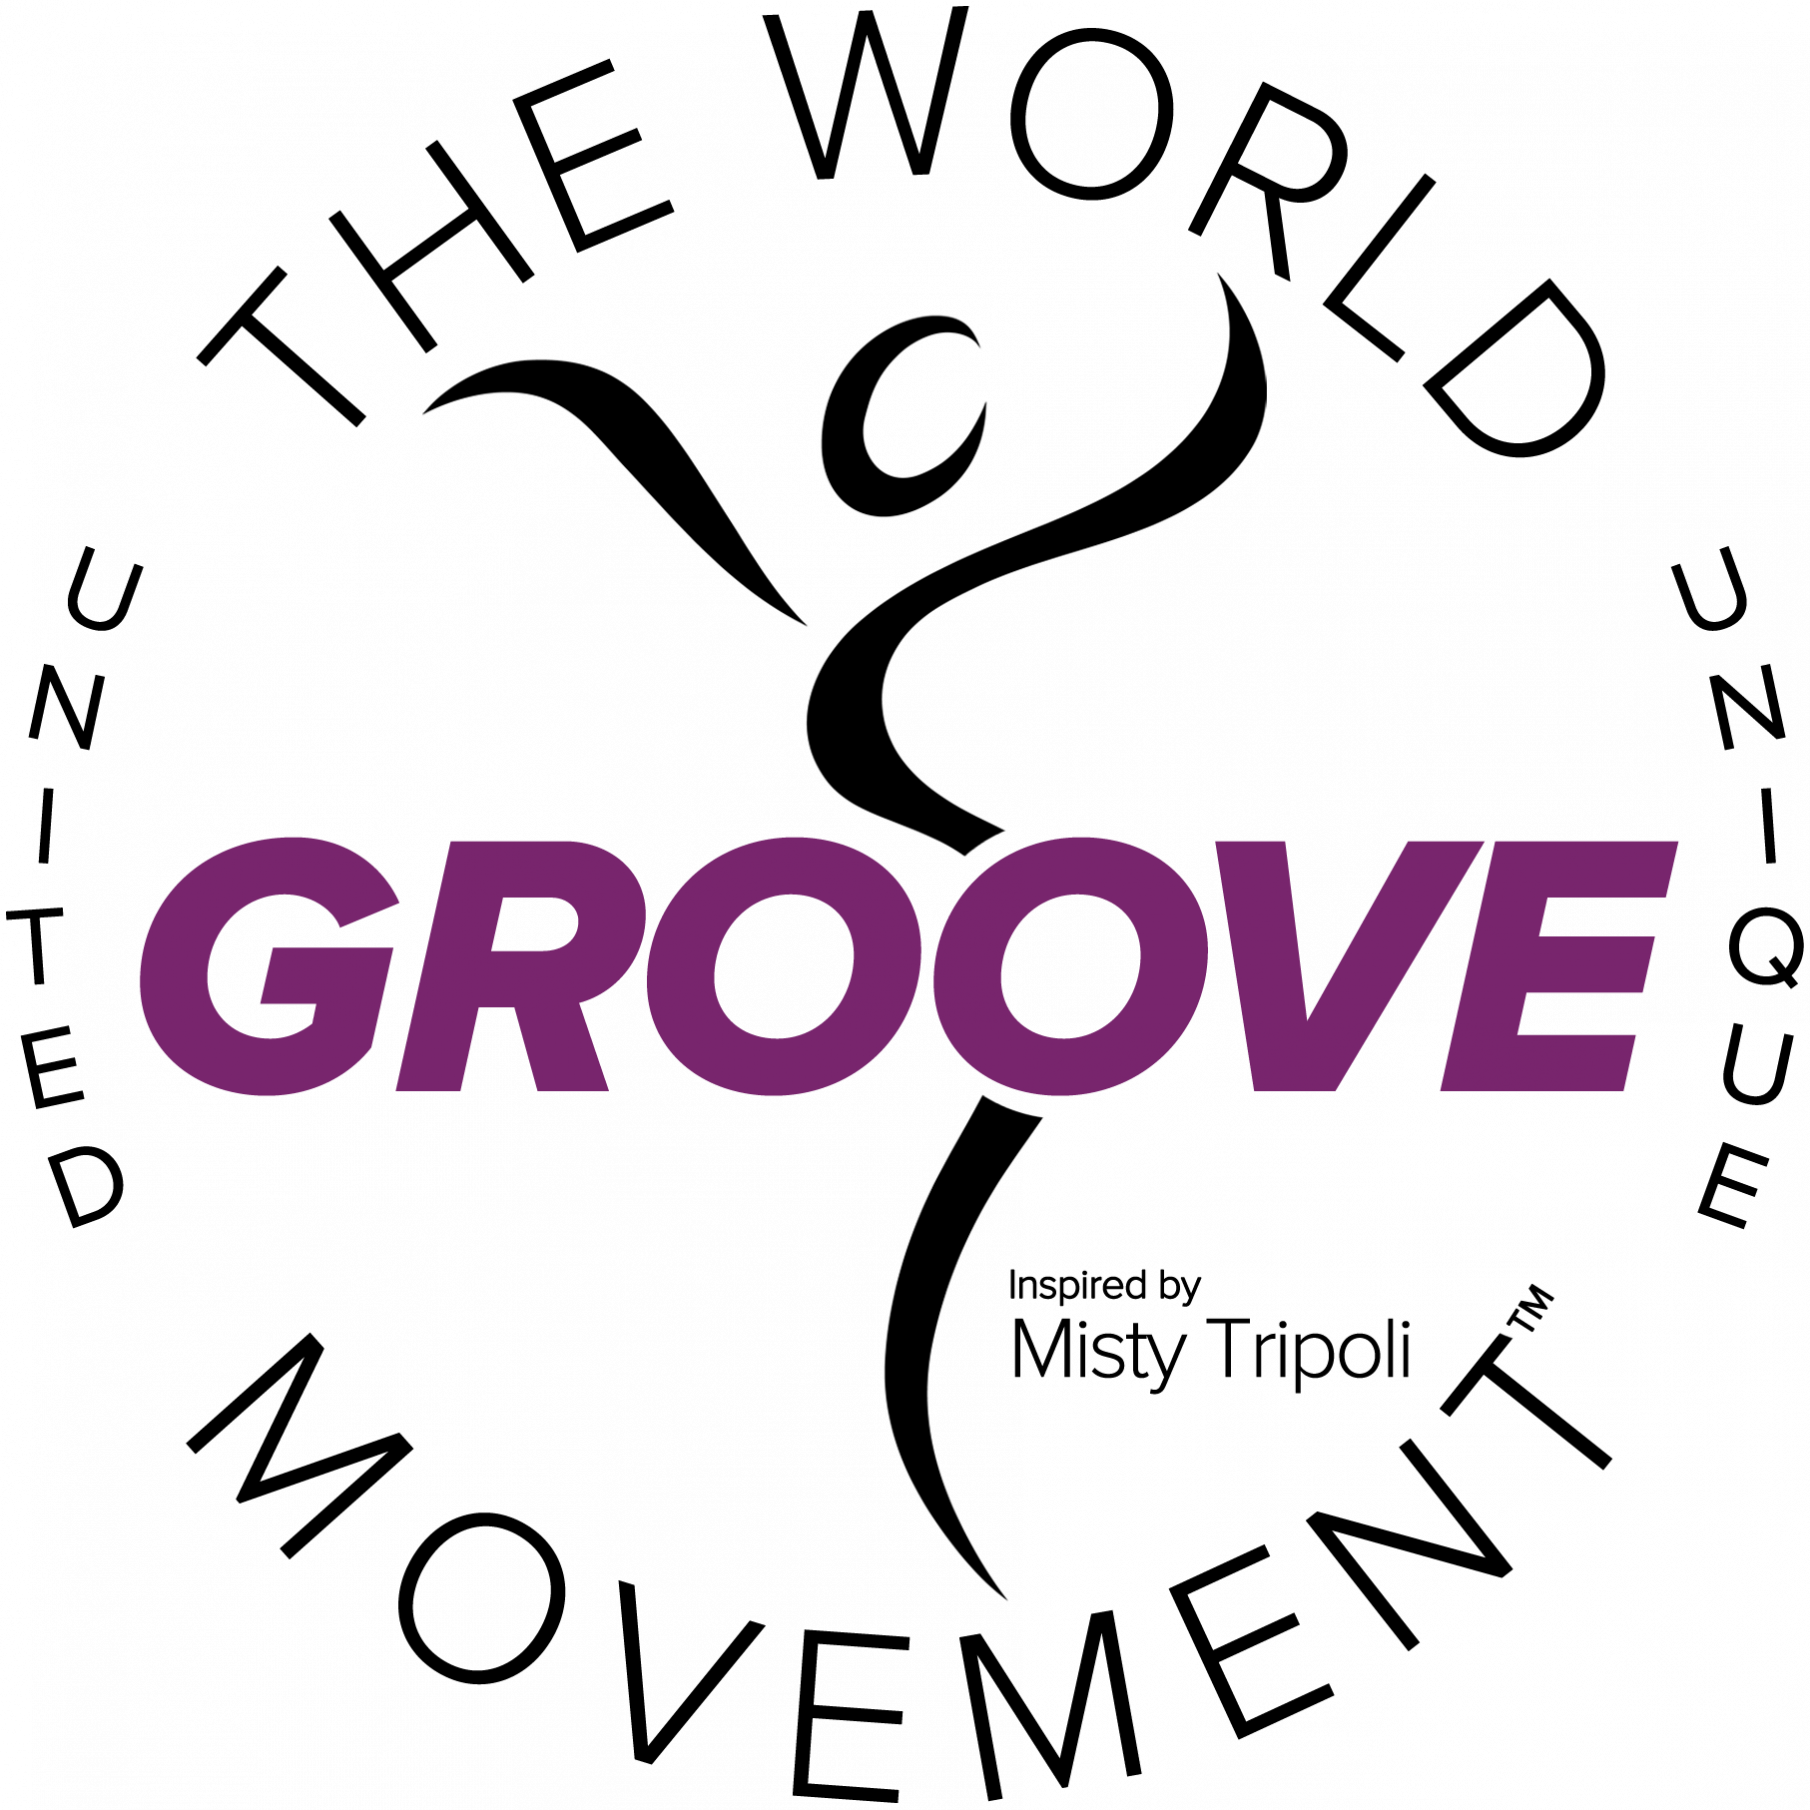 EWeek 2018 Launch Event with GROOVE